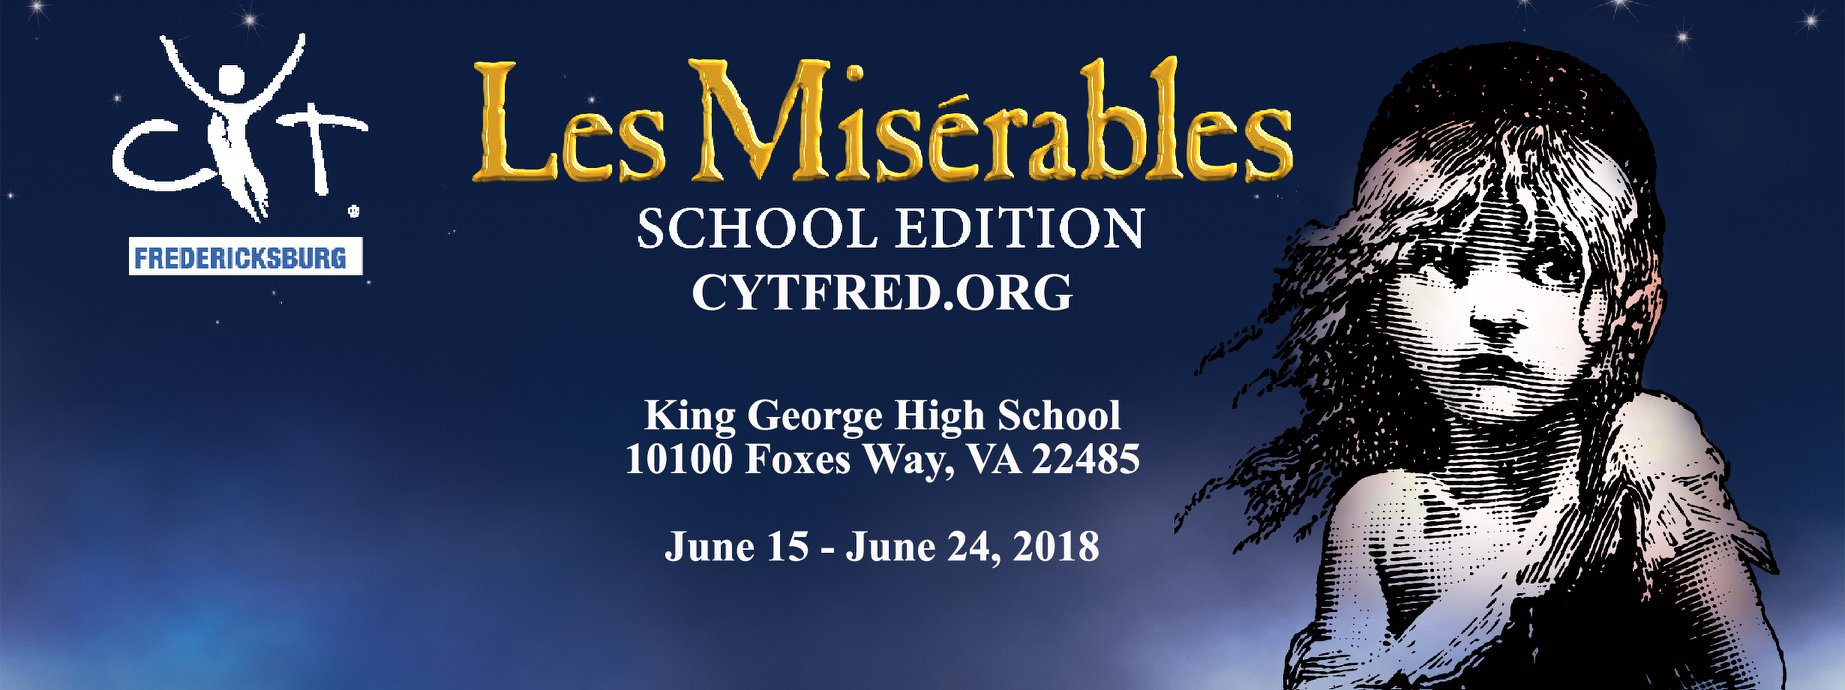 CYT Les Miserables